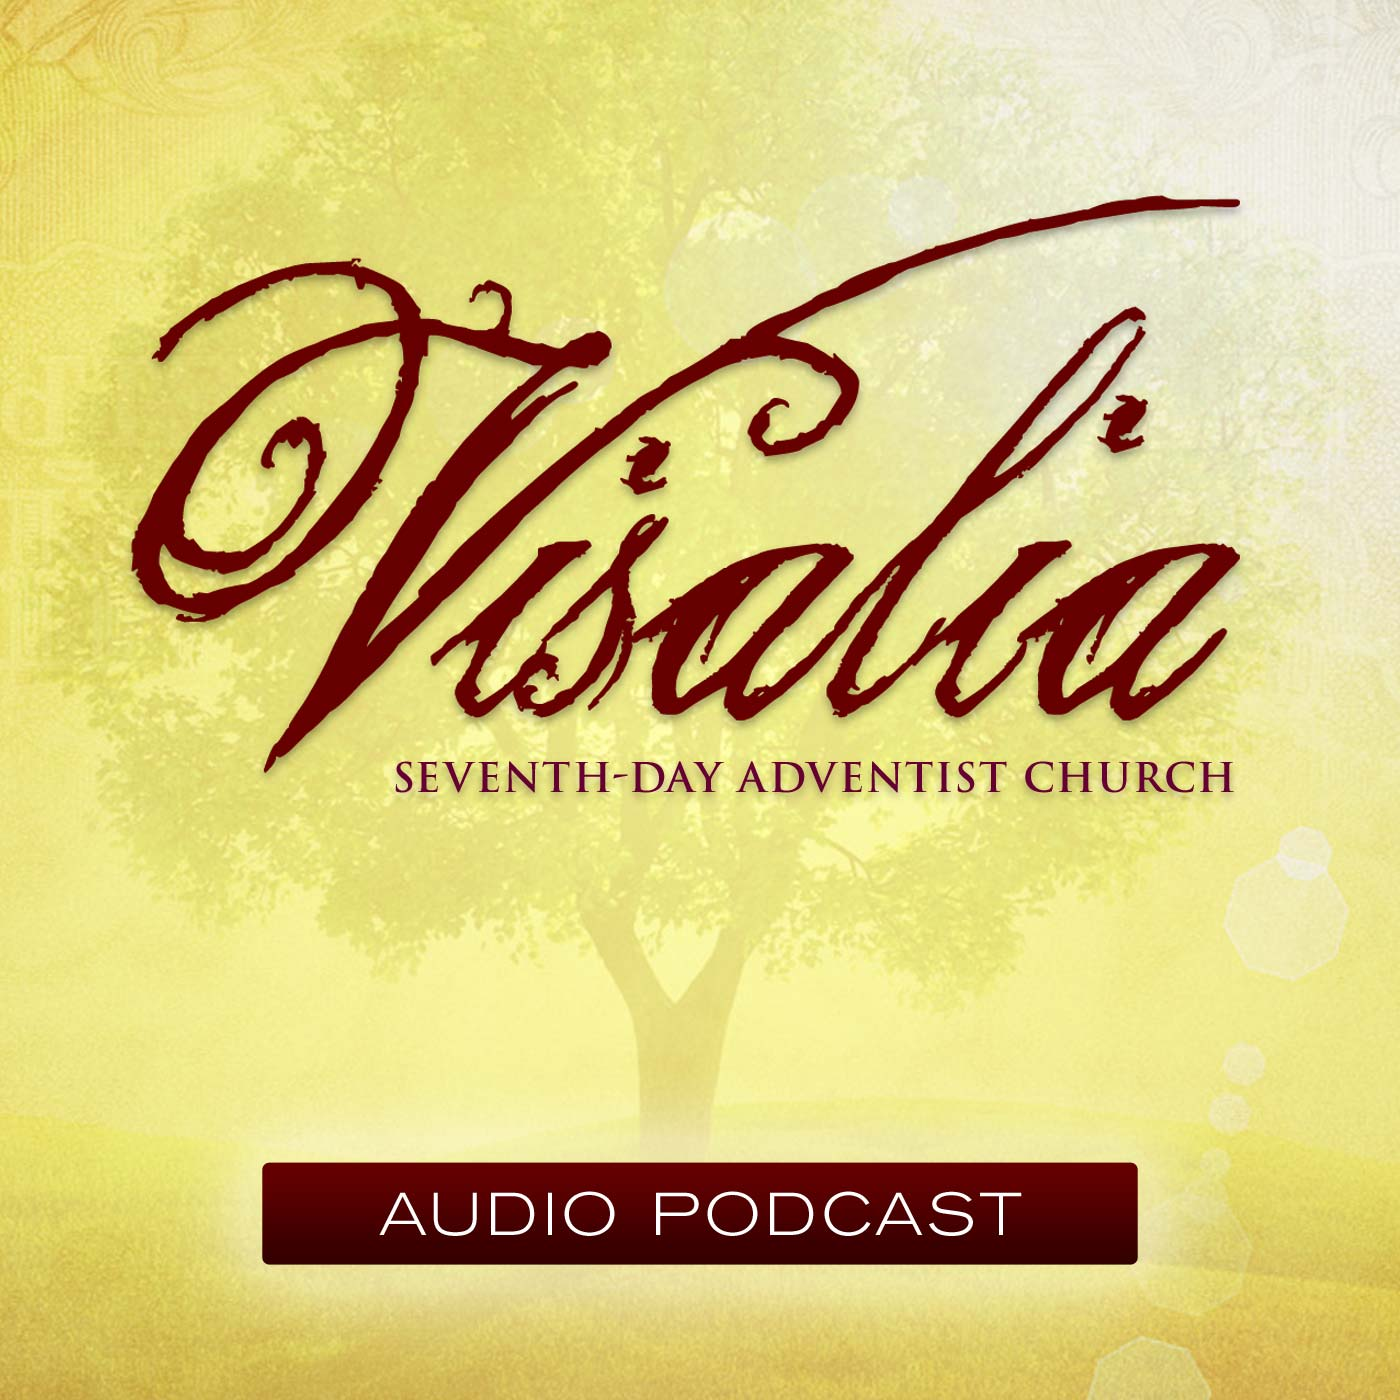 Visalia Seventh-Day Adventist Church Podcast